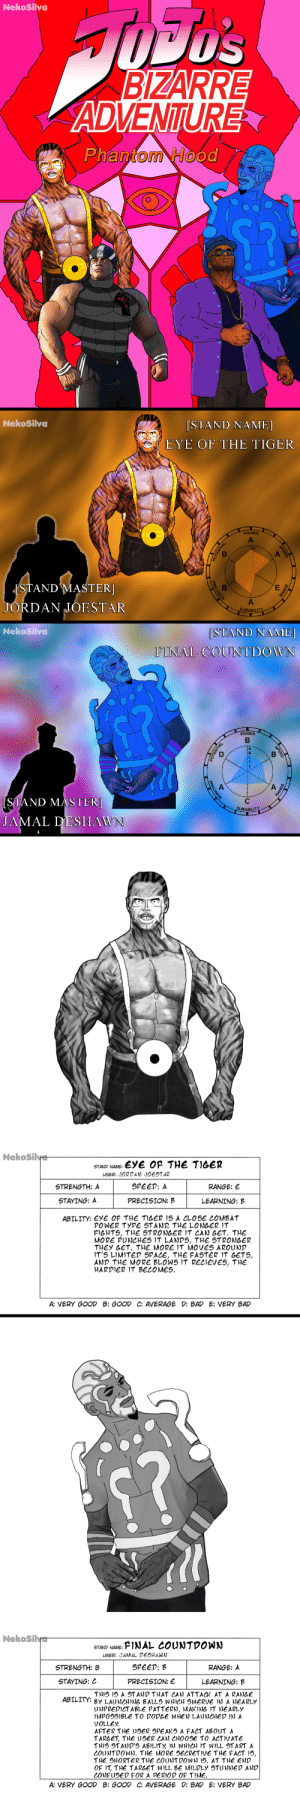 I made this like a year ago and I only posted it to my friend's discord, my twitter with 10 followers, and a dead meme site. I do not regret the 4 hours it took me to make it.: NekoSilva  BIZARRE  ADVENTURE  Phantom Hood  NekoSilva  [STAND NAME]  EYE OF THE TIGER  POWER  JSTAND MASTER]  JÓRDAN JESTAR  DURABILITY  NekoSilva  [STAND NAME]  FINAL COUNTDOWN  POWER  (STAND MÁSTER]  DURABILITY  JAMAL DESHAWN  NekoSilya  OF THE TIGER  STAND NAME: EYE  USER: JORDAN JOESTAR  SPEED: A  STRENGTH: A  RANGE: E  STAYING: A  PRECISION: B  LEARNING: B  ABILITY: EYE OF THE TIGER 15 A CLOSE COMBAT  DOWER TYDE STAND THE LONGER 1T  FIGHTS, THE STRONGER 1T CAN GET. THE  MORE DUNCHES IT LAND5, THE STRONGER  THEY GET. THE MORE IT MOVES AROUND  IT'S LIMITED SPACE, THE FASTER IT GETS,  AND THE MORE BLOWS IT RECIEVES, T HE  HARDIER IT BECOMES.  A: VERY GOOD B: GOOD C: AVERAGE D: BAD E: VERY BAD  NekoSilya  STAND NAME: FINAL COUNTD OWN  USER: JAMAL DESHAWN  SPEED: B  STRENGTH: B  RANGE: A  PRECISION: €  STAYING: C  LEARNING: B  THIS IS A ST AND THAT CAN ATTACK AT A RANGE  BY LAUNCHING BALLS WHIICH SWERVE IN A NEARLY  UNPREDICT ABLE PATTERN, MAKING IT NE ARLY  IMPOSSIBLE TO DODGE W HEN LAUNCHED IN A  VOLLEY.  AFTER THE USER SPEAKS A FACT ABOUT A  TARGET, THE USER CAN CHO0SE TO ACTIVATE  THIS STAND'S ABILITY, IN WHICH IT WILL START A  COUNTDOWN. THE MORE SECRETIVE THE FACT 15,  THE SHORTER THE COUNT DOWN IS. AT THE END  OF IT, THE TARGET WILL BE MILDLY STUNNED AND  CONFUSED FOR A PERIOD OF TIME.  ABILITY:  A: VERY GOOD B: GOOD C: AVERAGE D: BAD E: VERY BAD  SPEED  POTENTIAL  PRECISION  RANGE  SPEED  B.  POTENTIAL  RECISION  RANGE I made this like a year ago and I only posted it to my friend's discord, my twitter with 10 followers, and a dead meme site. I do not regret the 4 hours it took me to make it.